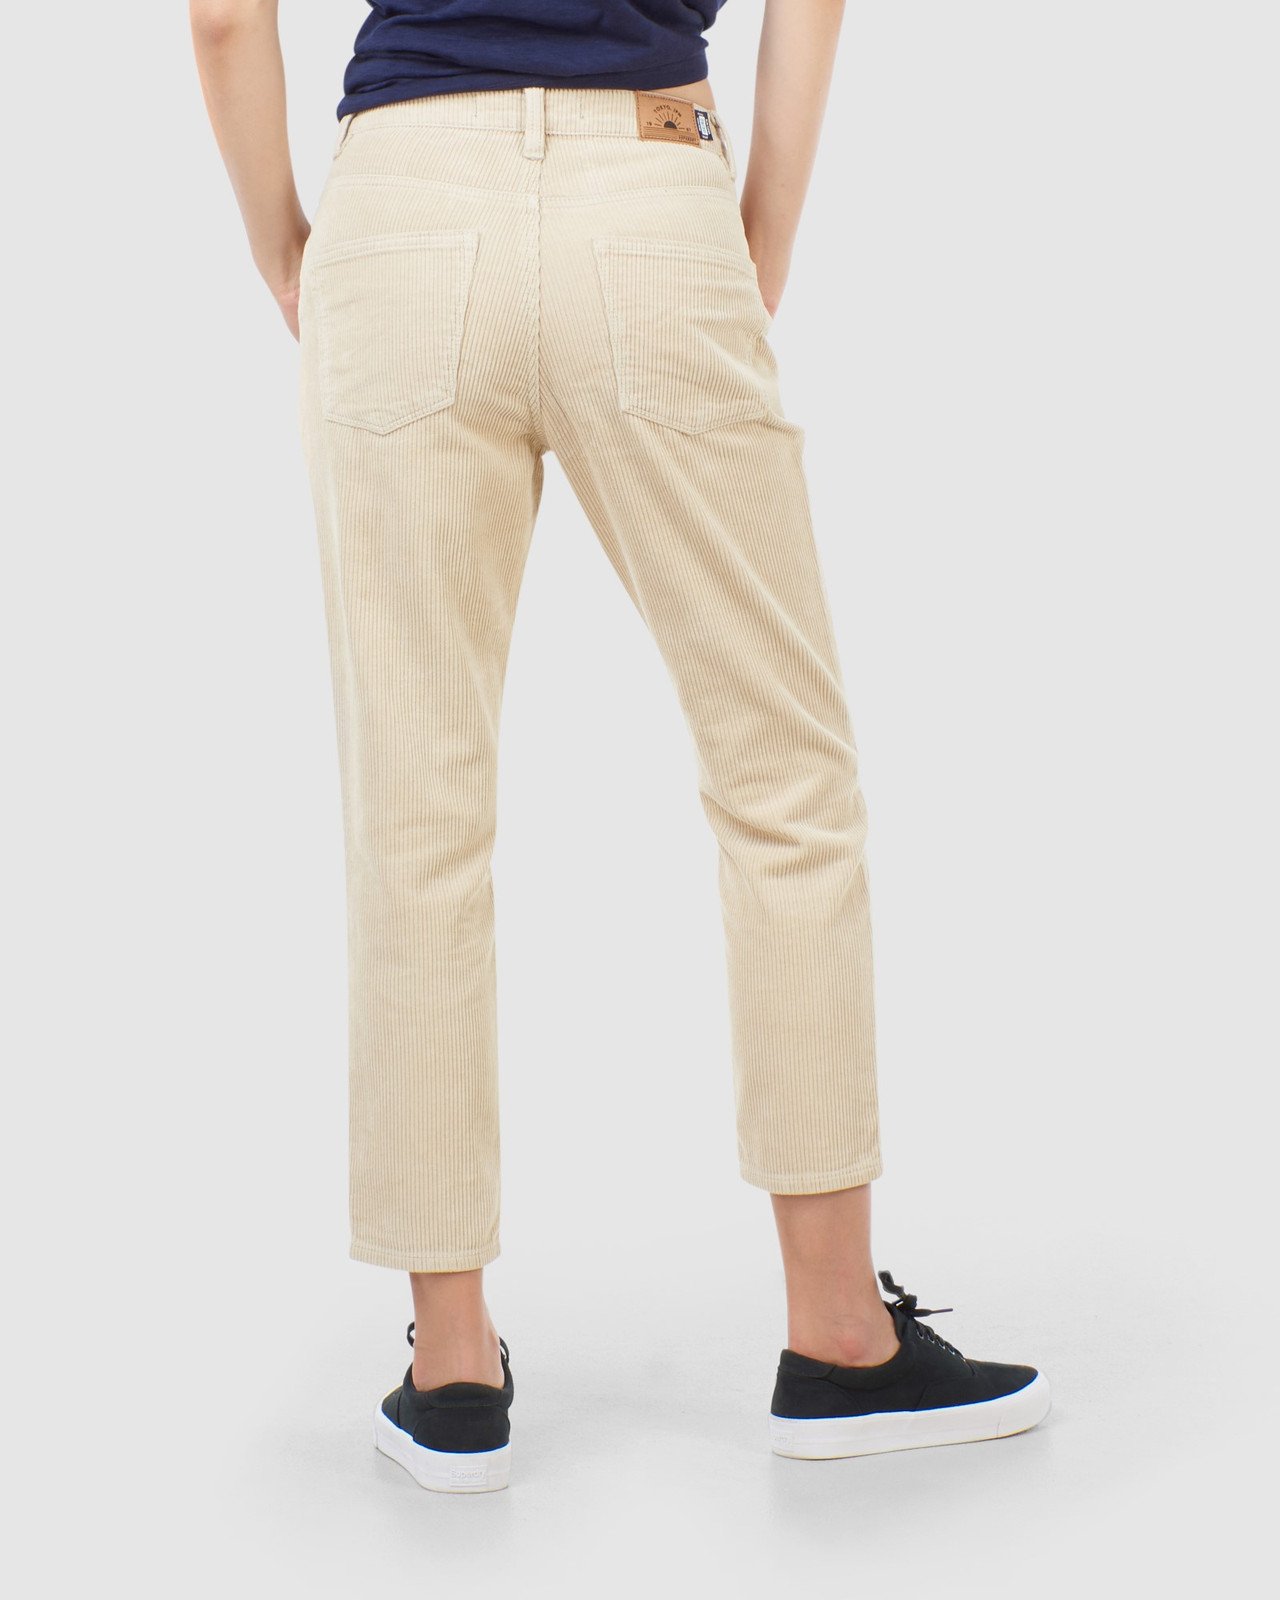 Superdry Womens HIGH SLIM TAPER CORD Neutrals Casual Pants 3